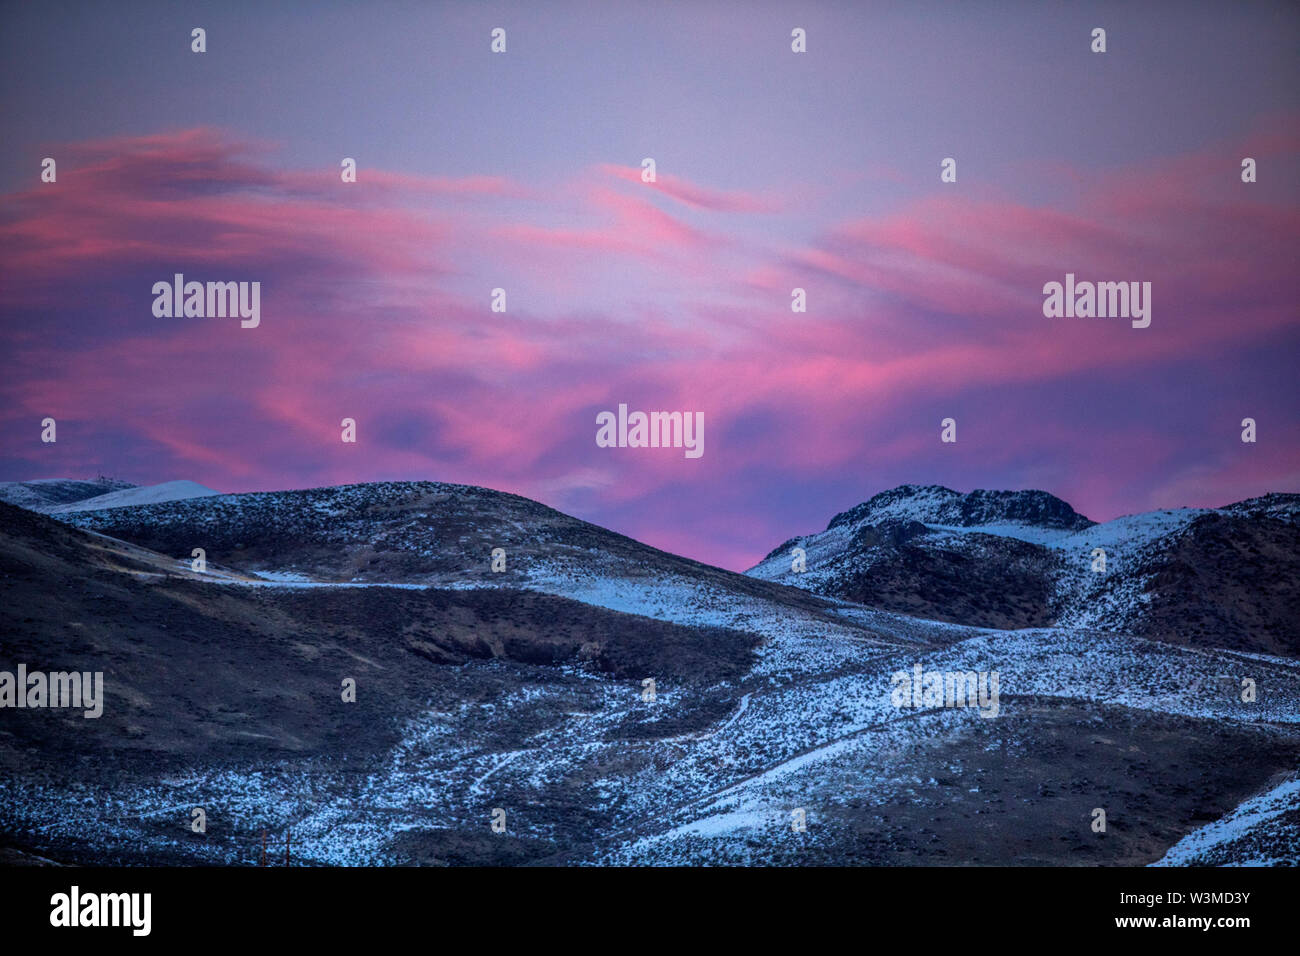 Mountain landscape at sunset in Bellevue, Idaho, USA - Stock Image